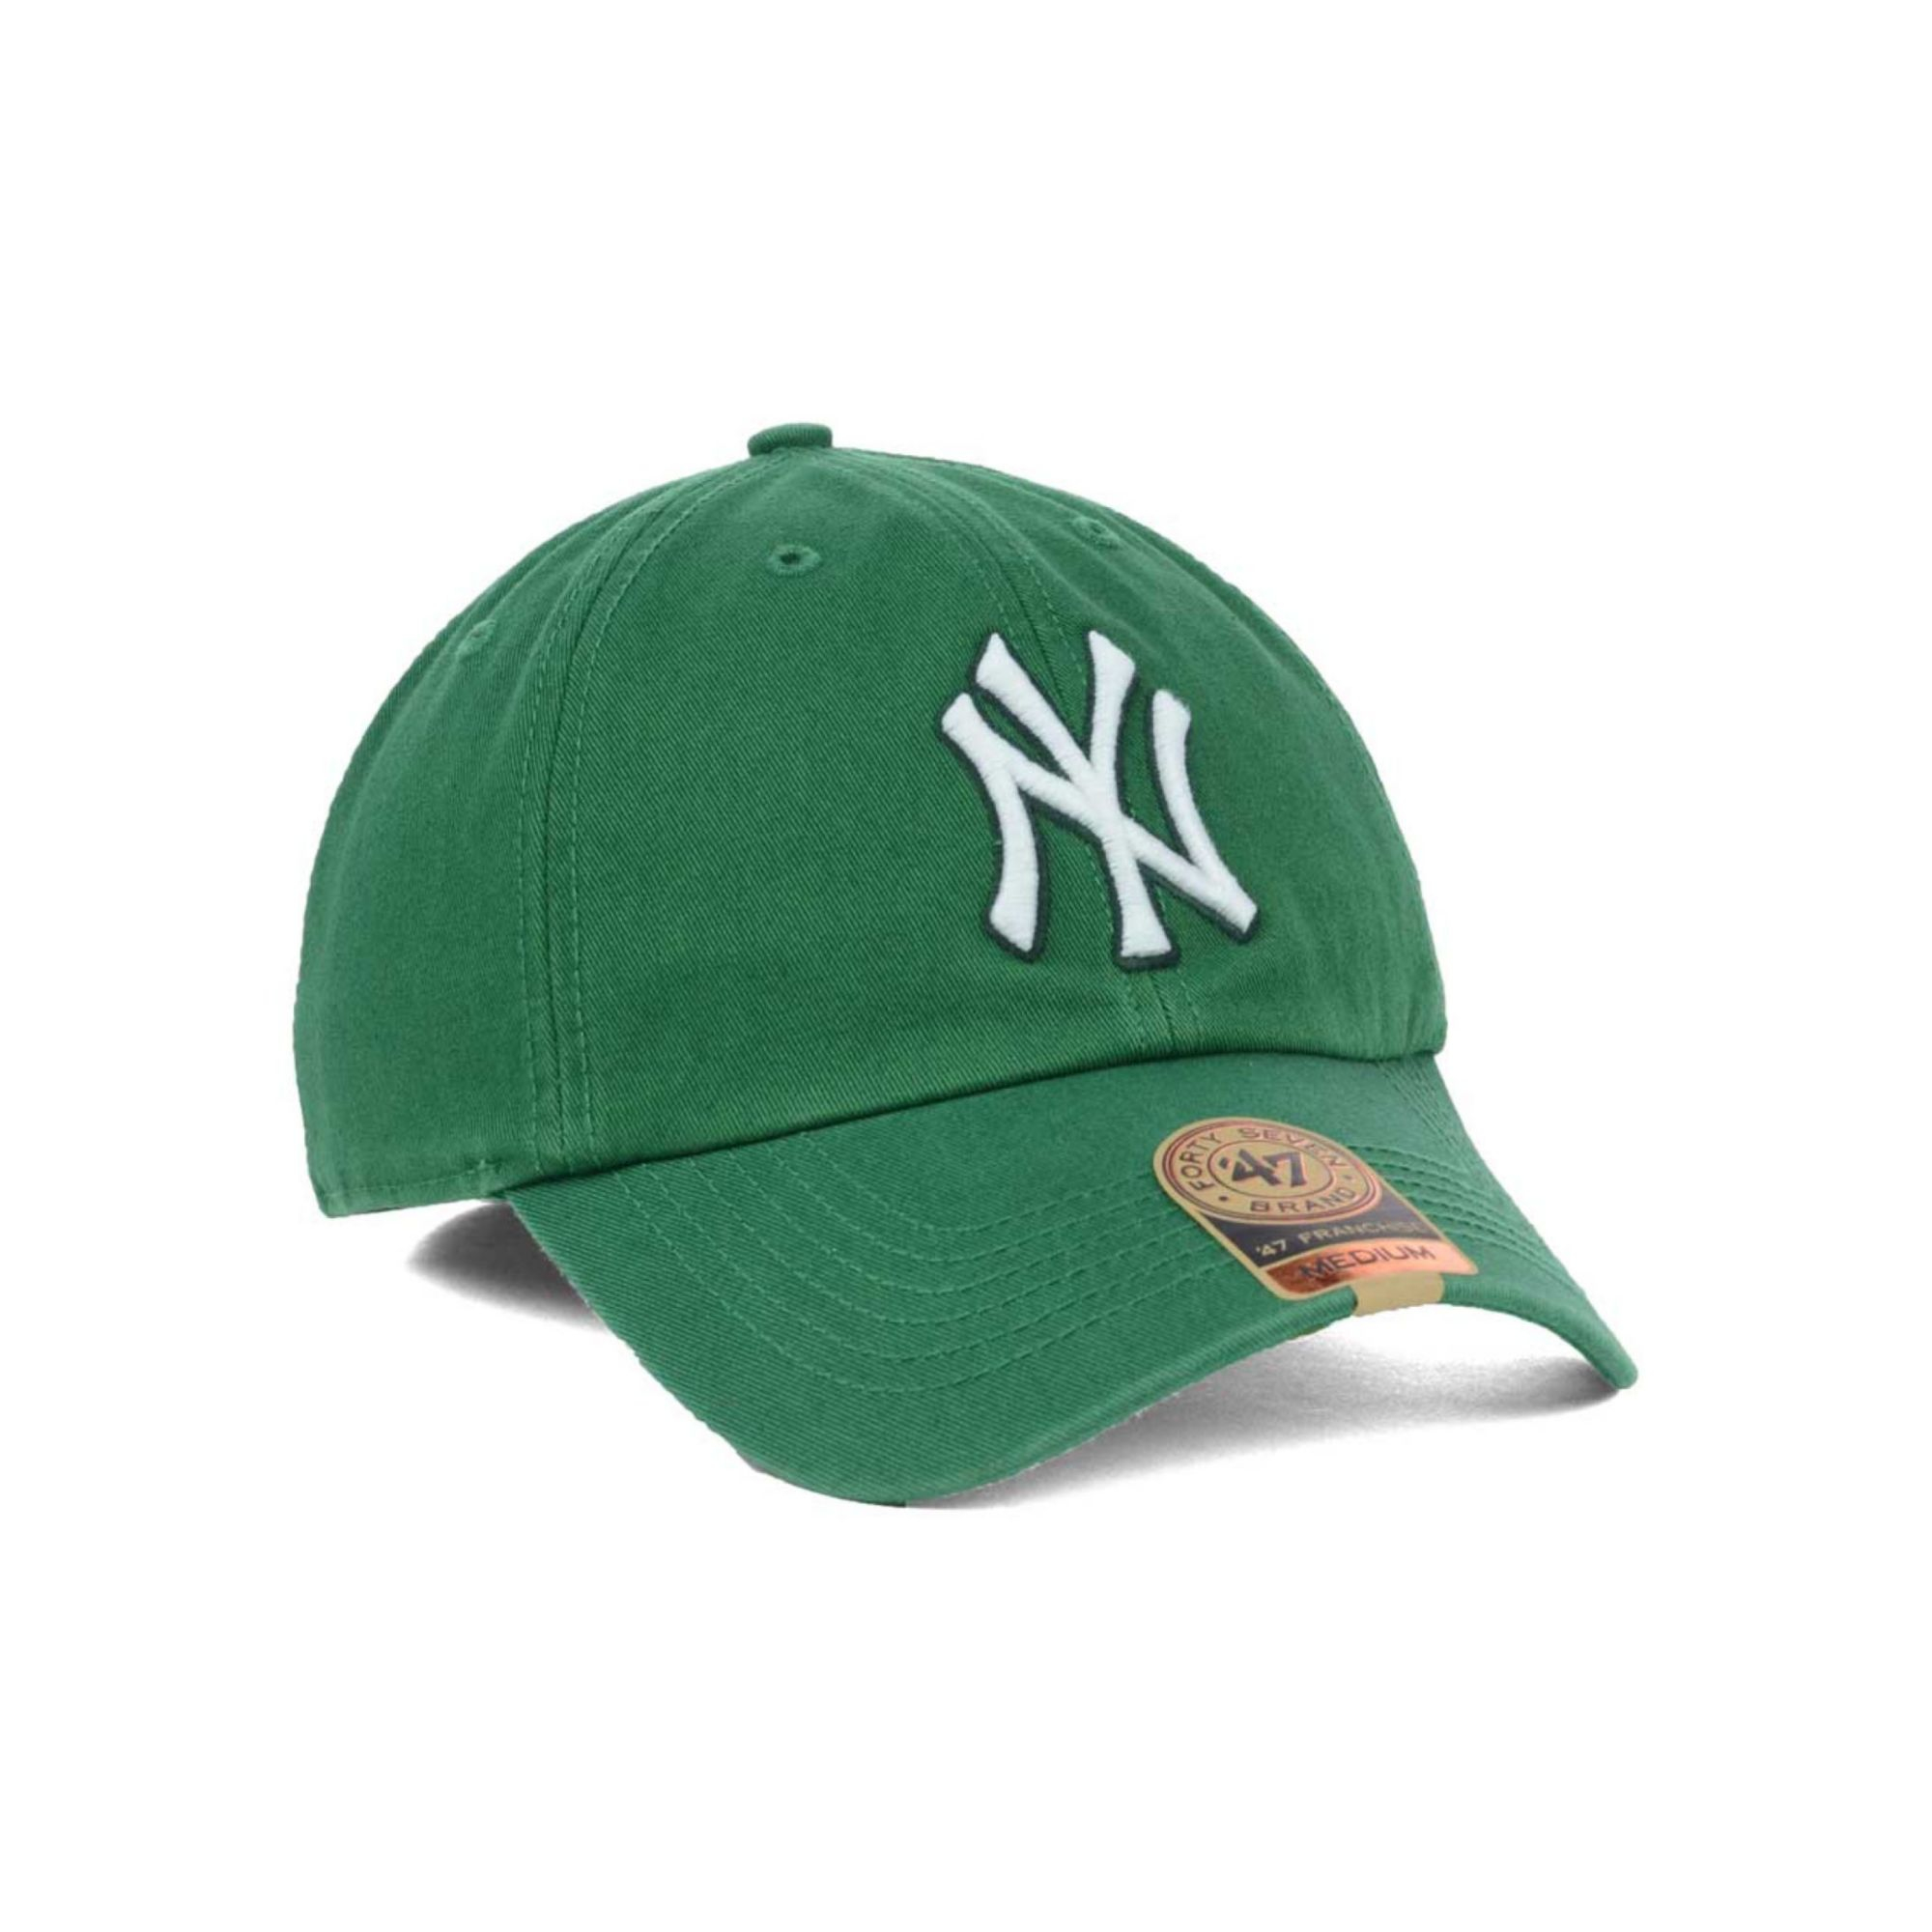 best authentic ccd8d 51522 ... new arrivals hat lyst 47 brand new york yankees mlb kelly 47 franchise  cap in green